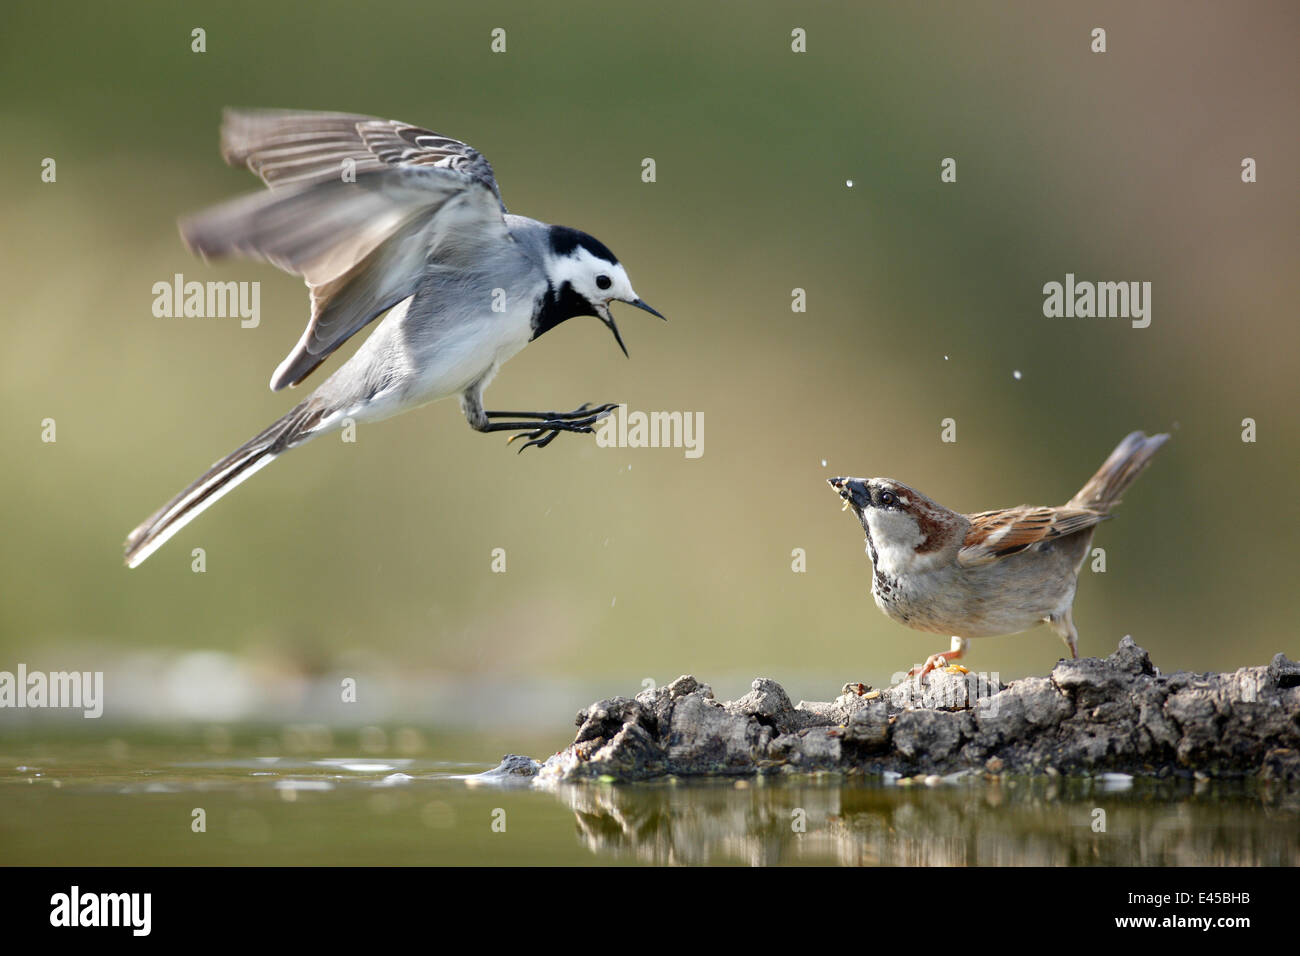 Pied wagtail (Motacilla alba) flying with beak wide open showing aggression towards Sparrow, Alicante, Spain Stock Photo